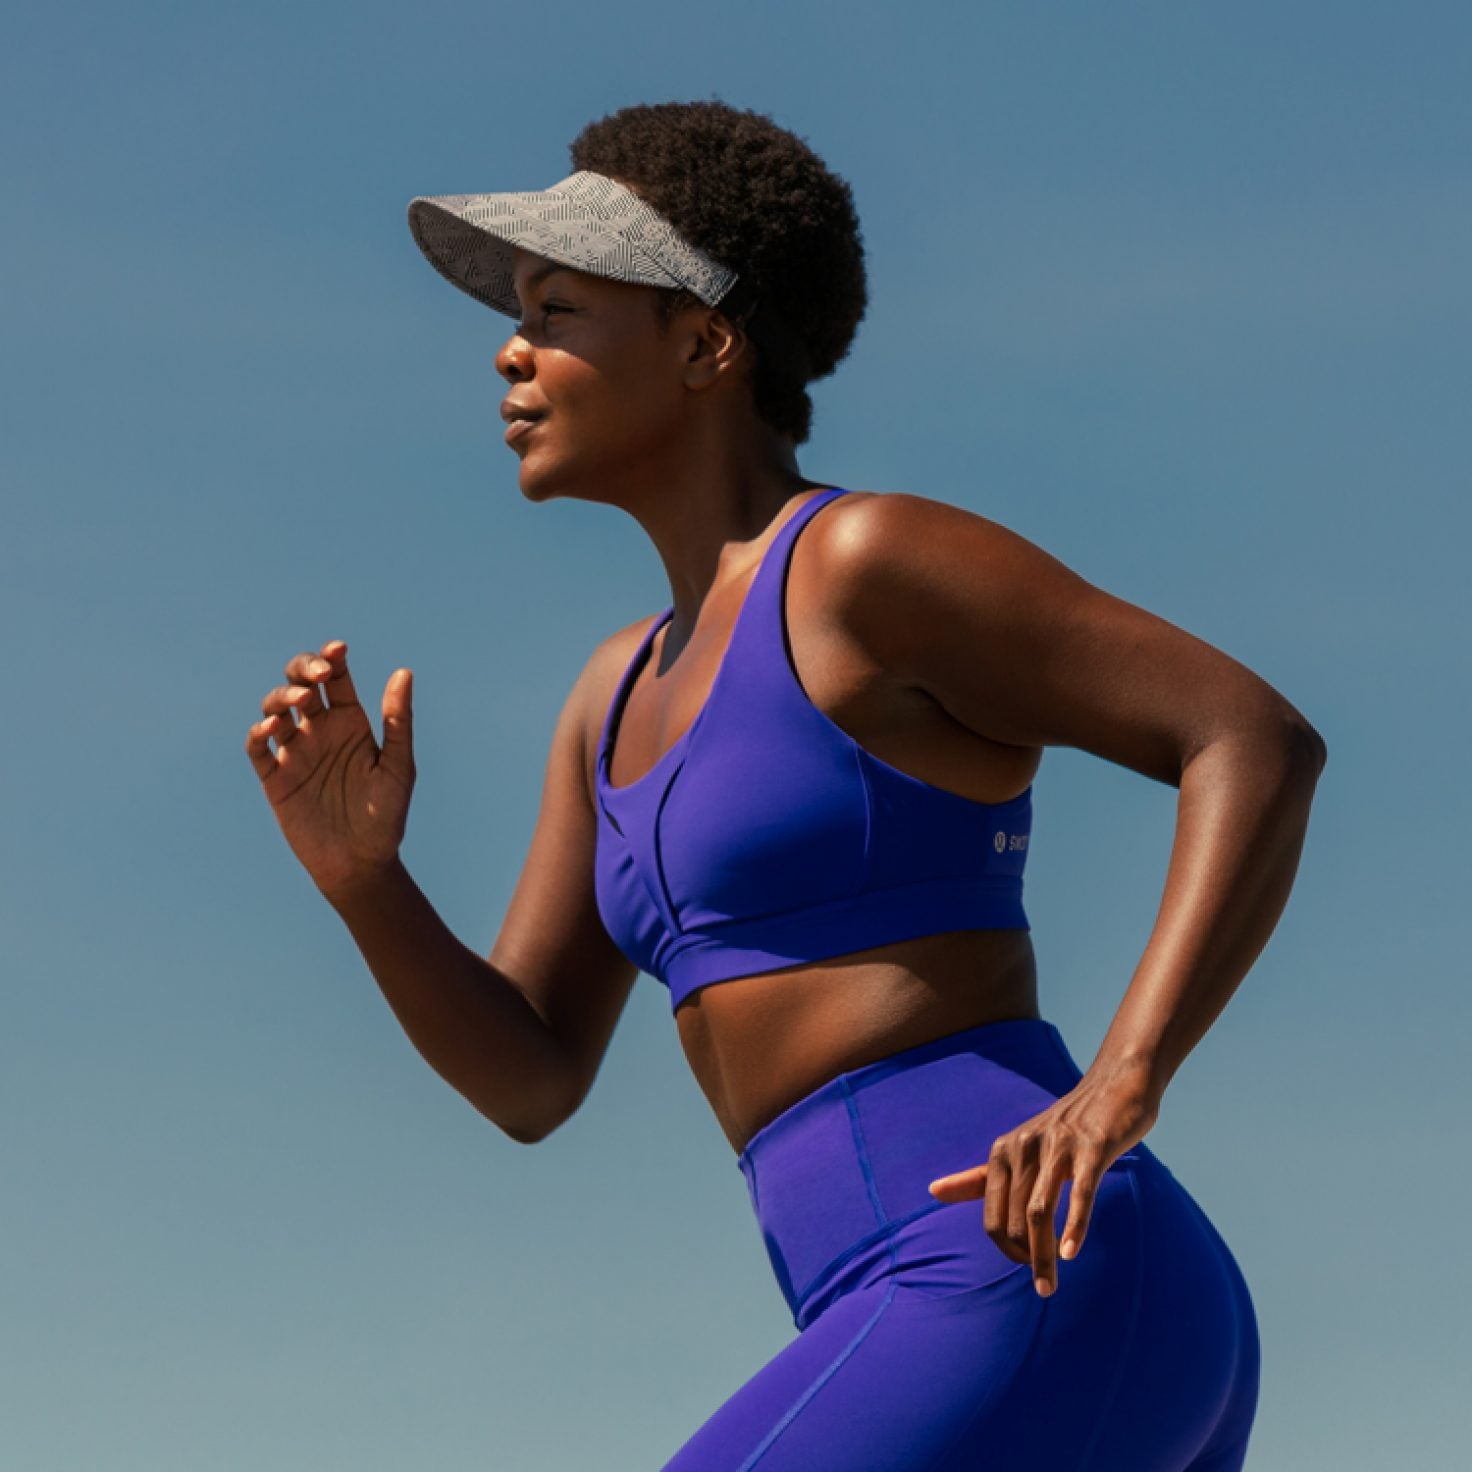 Shop Now: Lululemon's SeaWheeze Run Collection